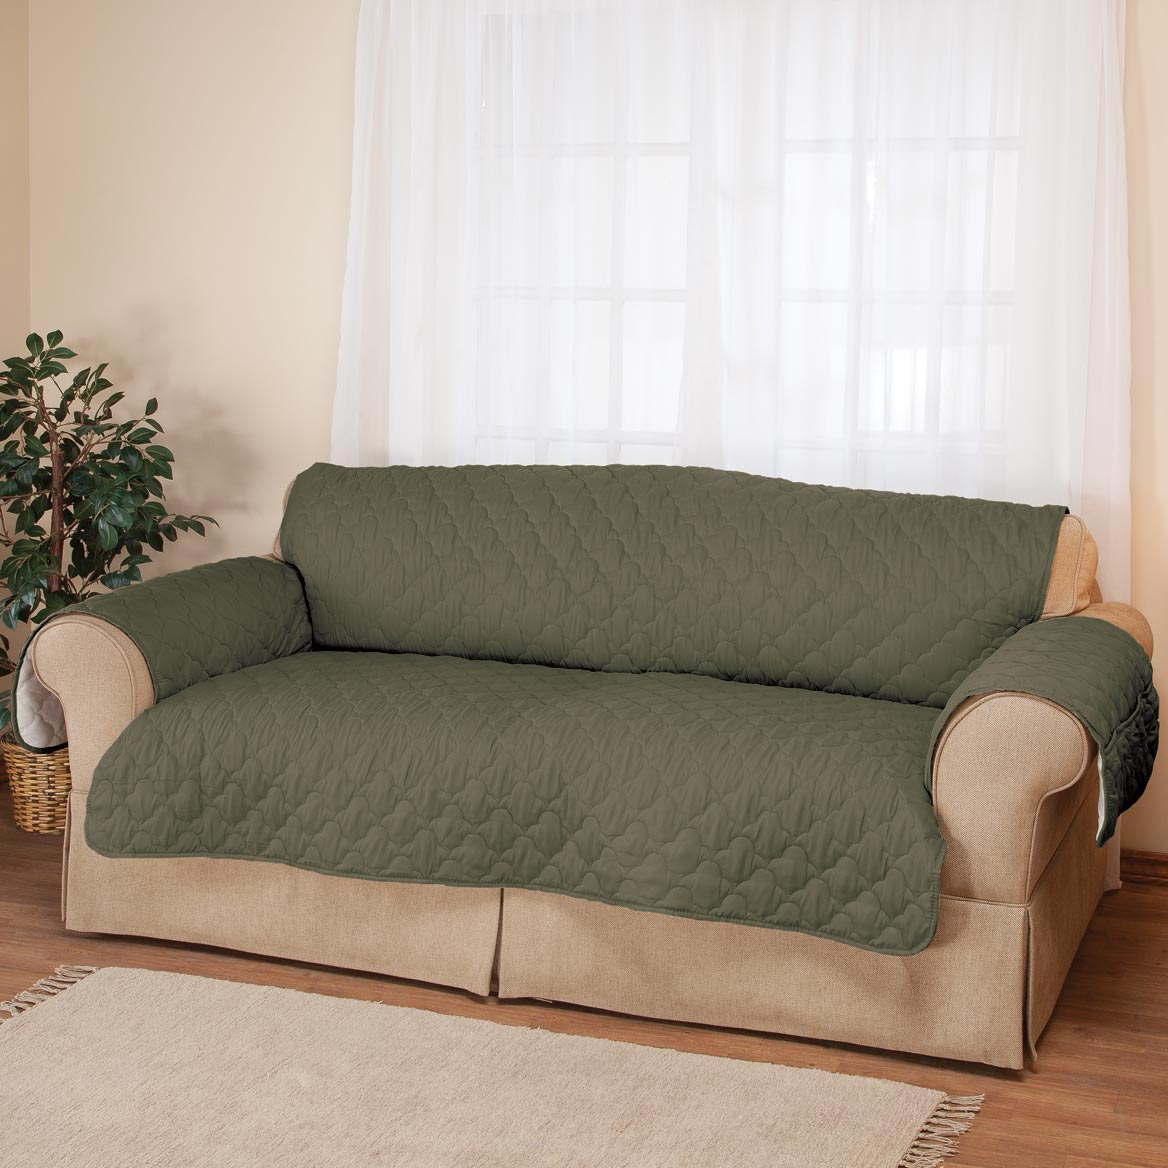 Waterproof Quilted Sherpa Sofa Cover by OakRidgeTM